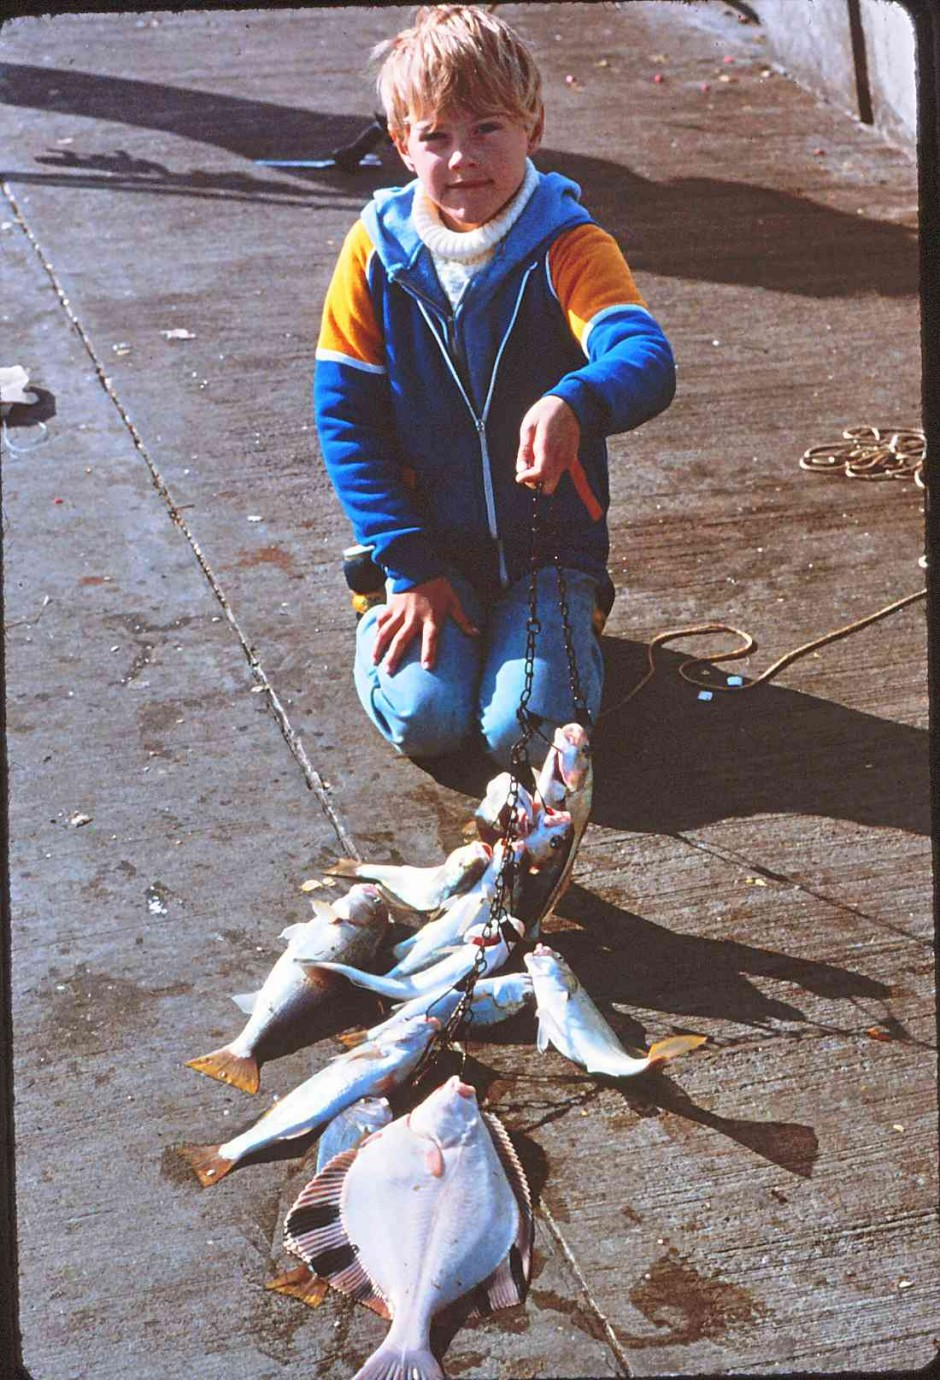 Mix.Fish_Pacifica_1977_Mike